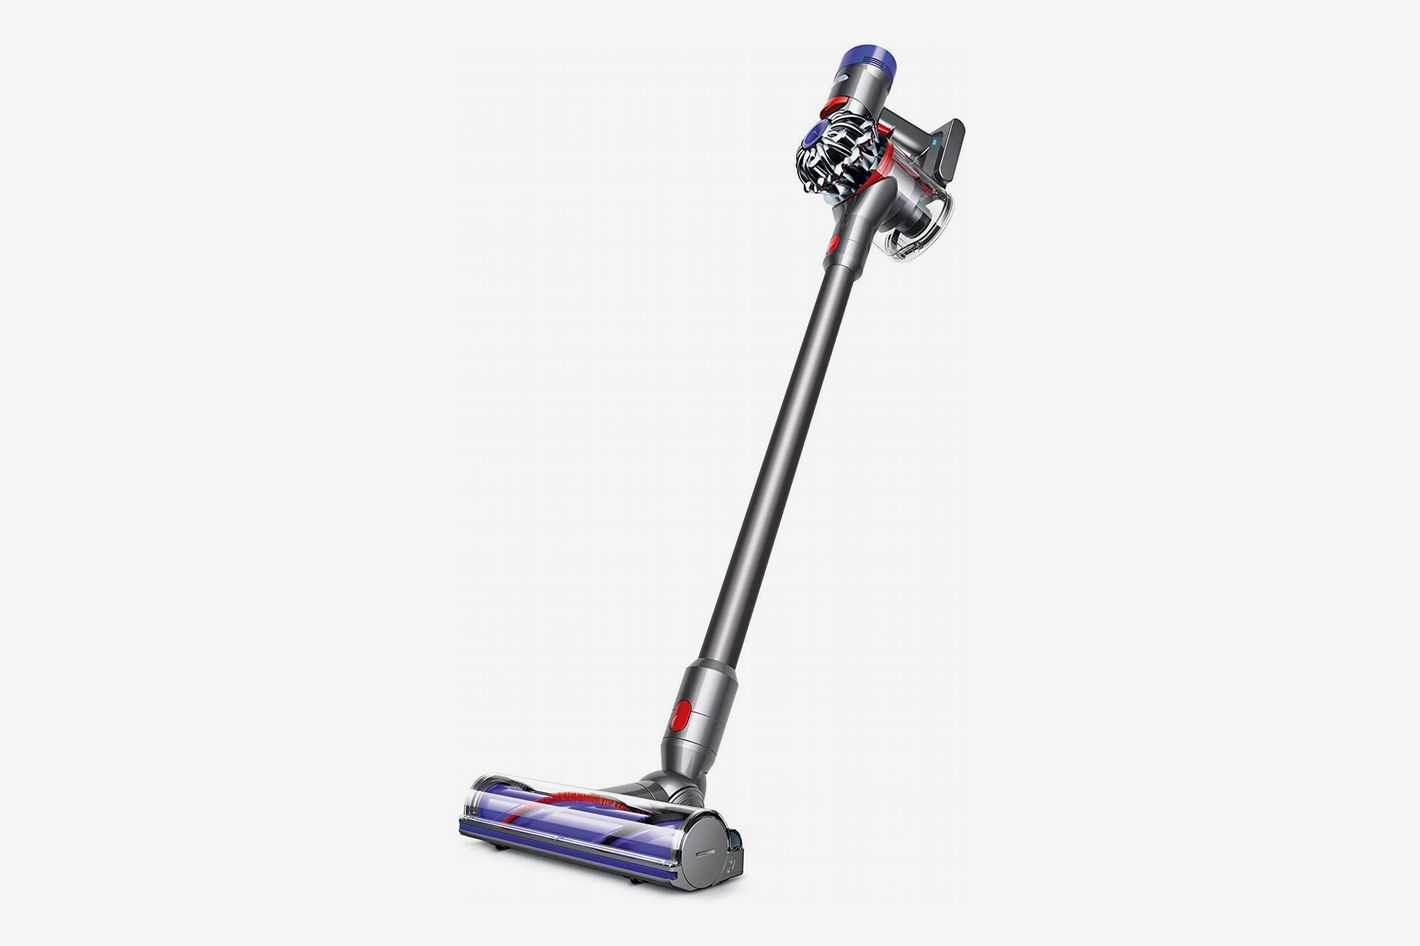 19 Best Vacuum Cleaners 2019